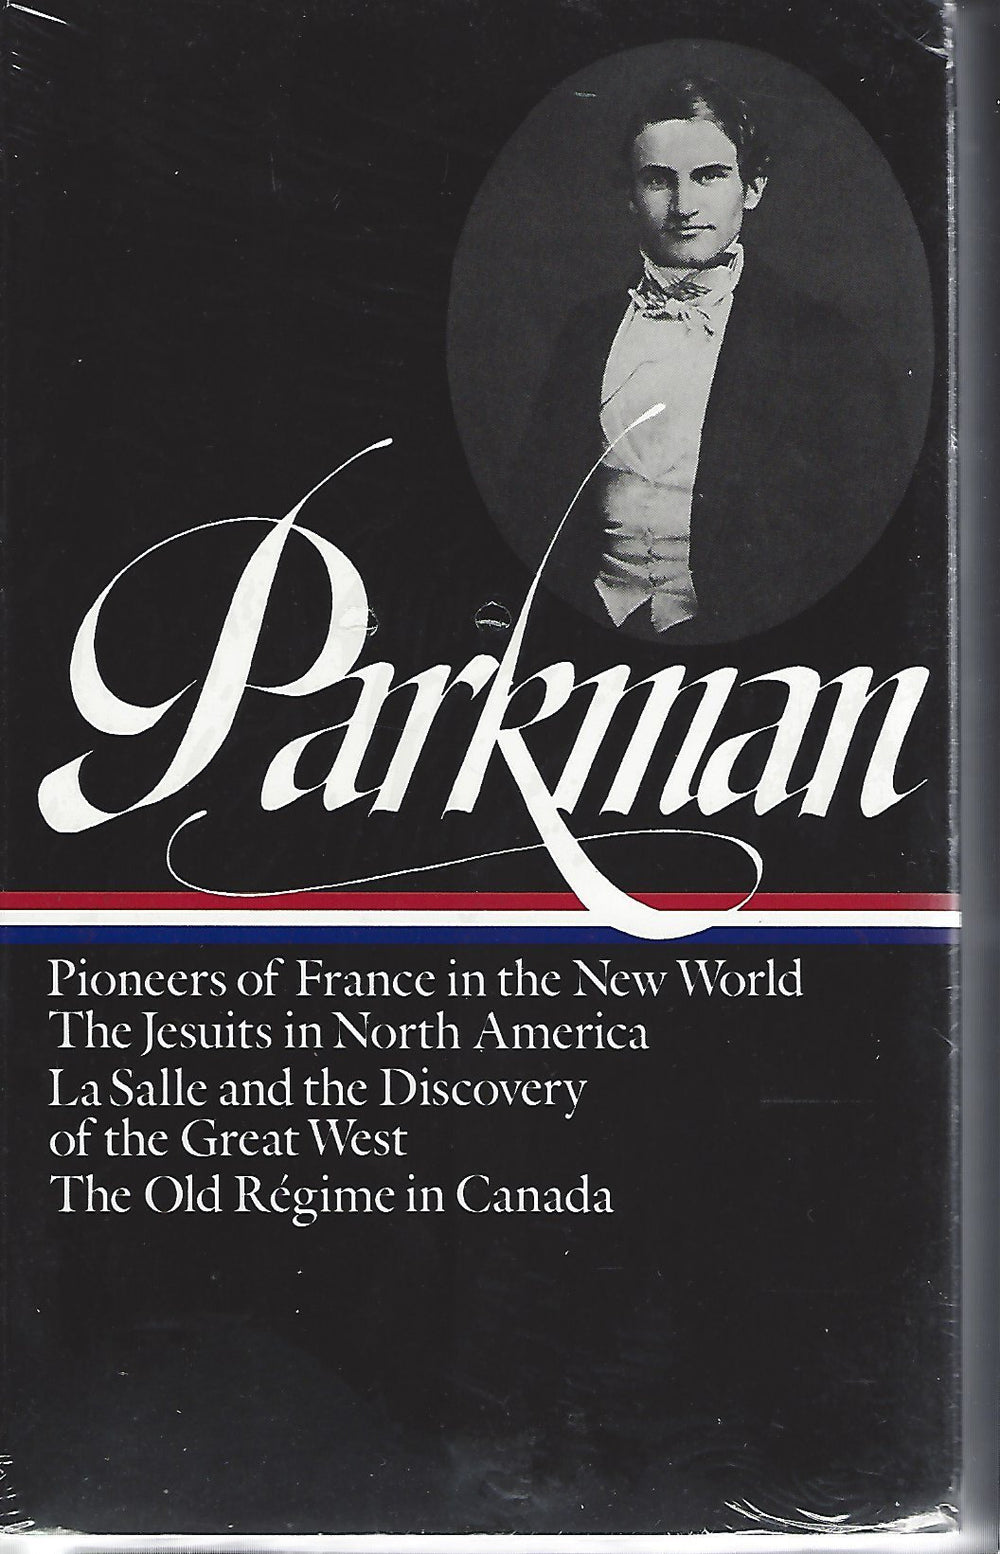 Parkman (Volume 1) France and England in North America (The Library of America) SEALED